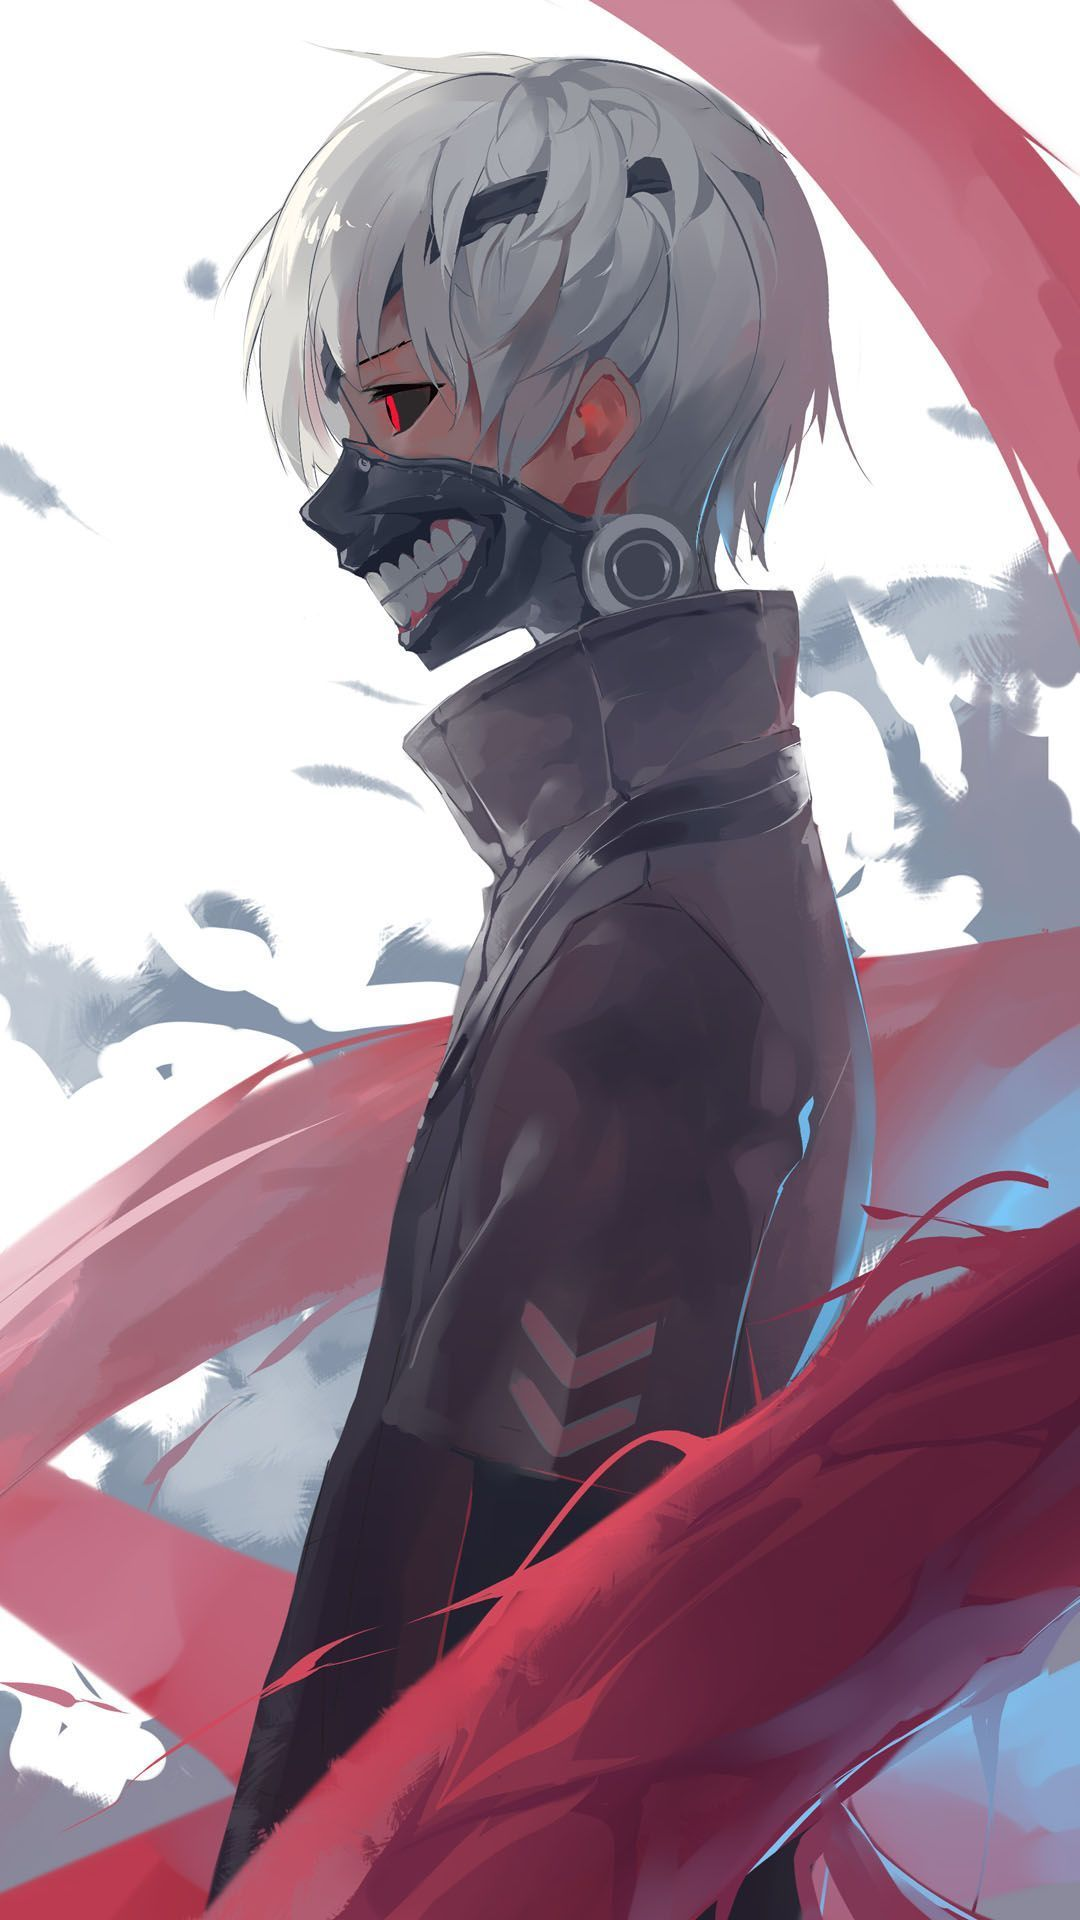 Tokyo Ghoul Iphone Android Iphone Desktop Hd Backgrounds Wallpapers 1080p 4k 127804 Hdwallpapers Tokyo Ghoul Fan Art Tokyo Ghoul Anime Tokyo Ghoul